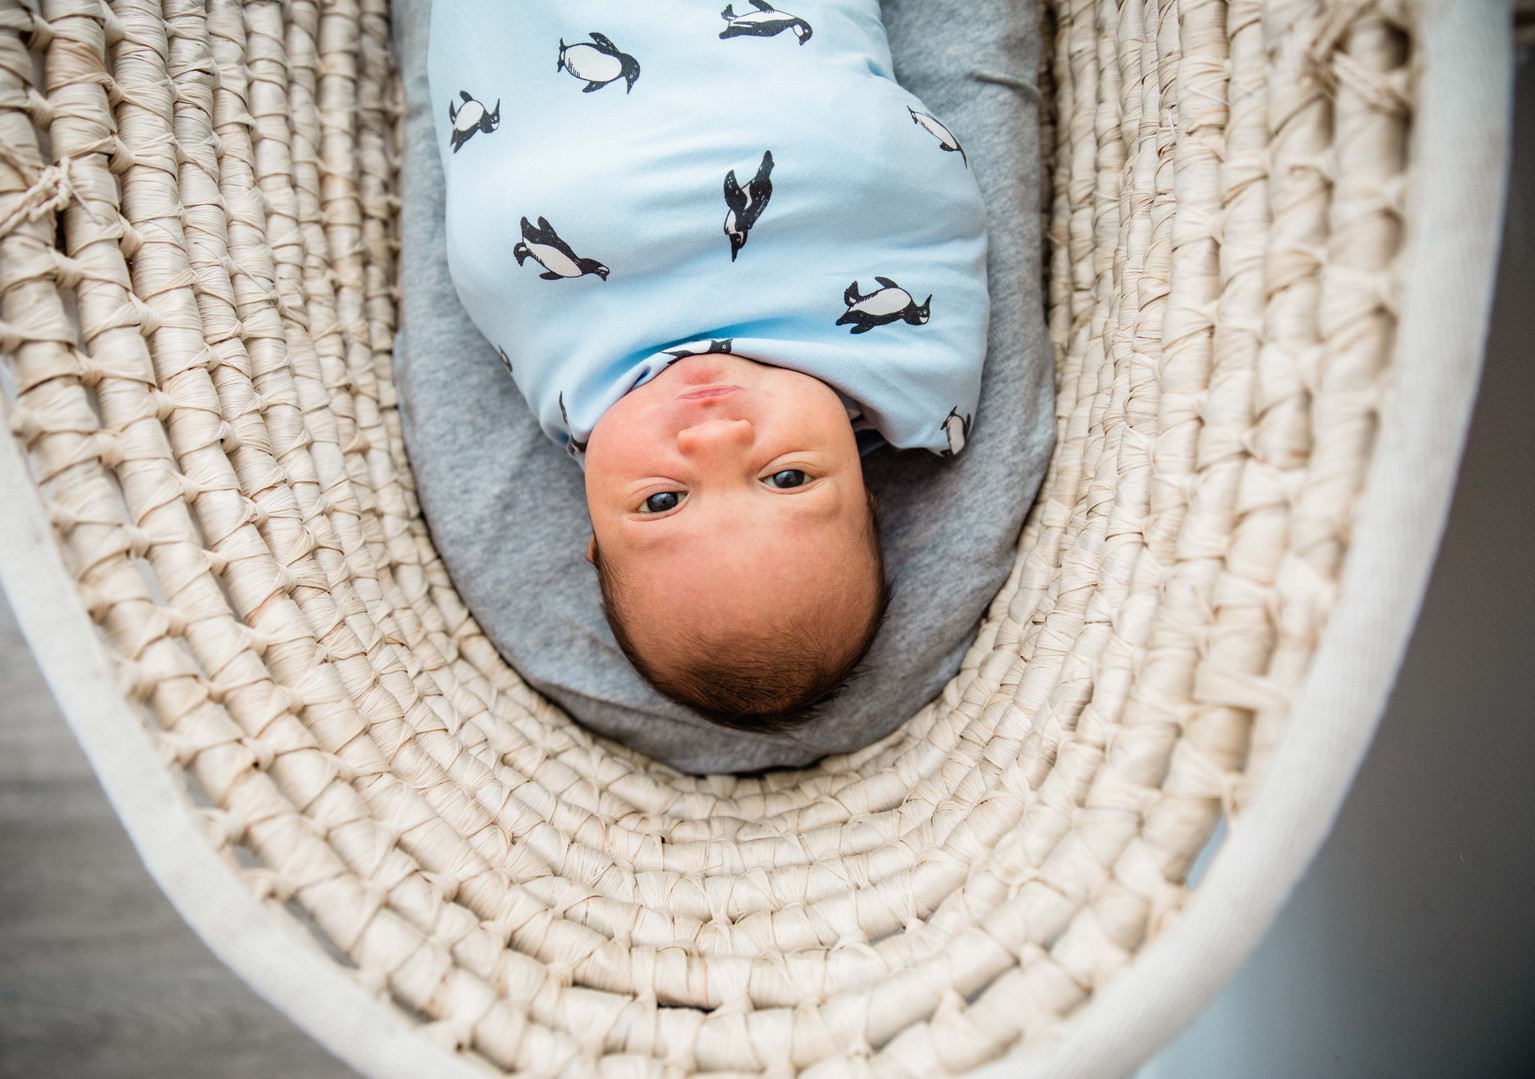 newborn in bassinet